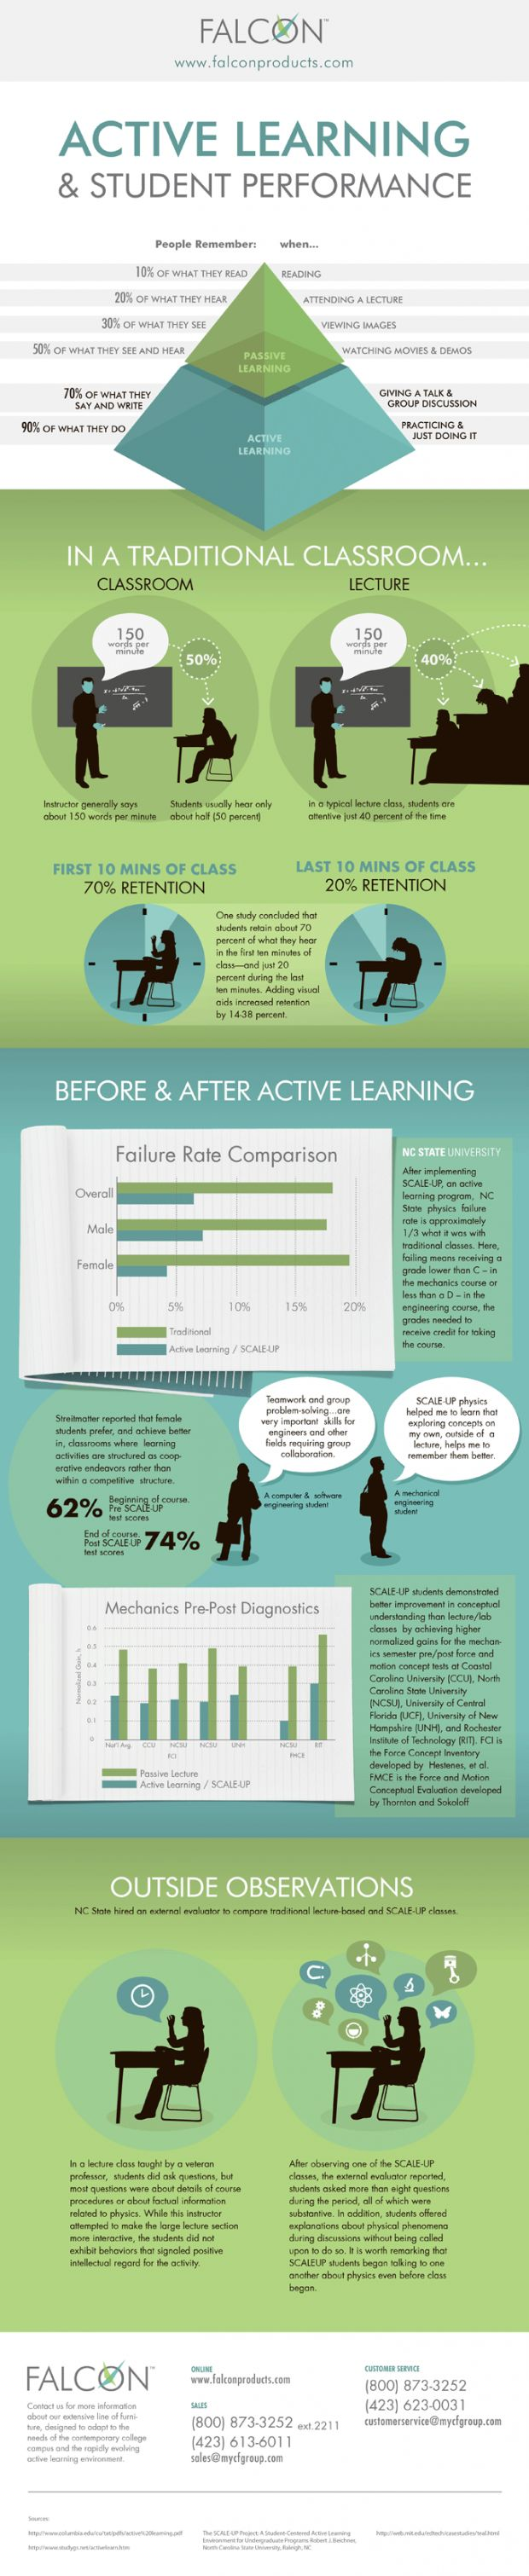 Active Learning and Student Performance Infographic